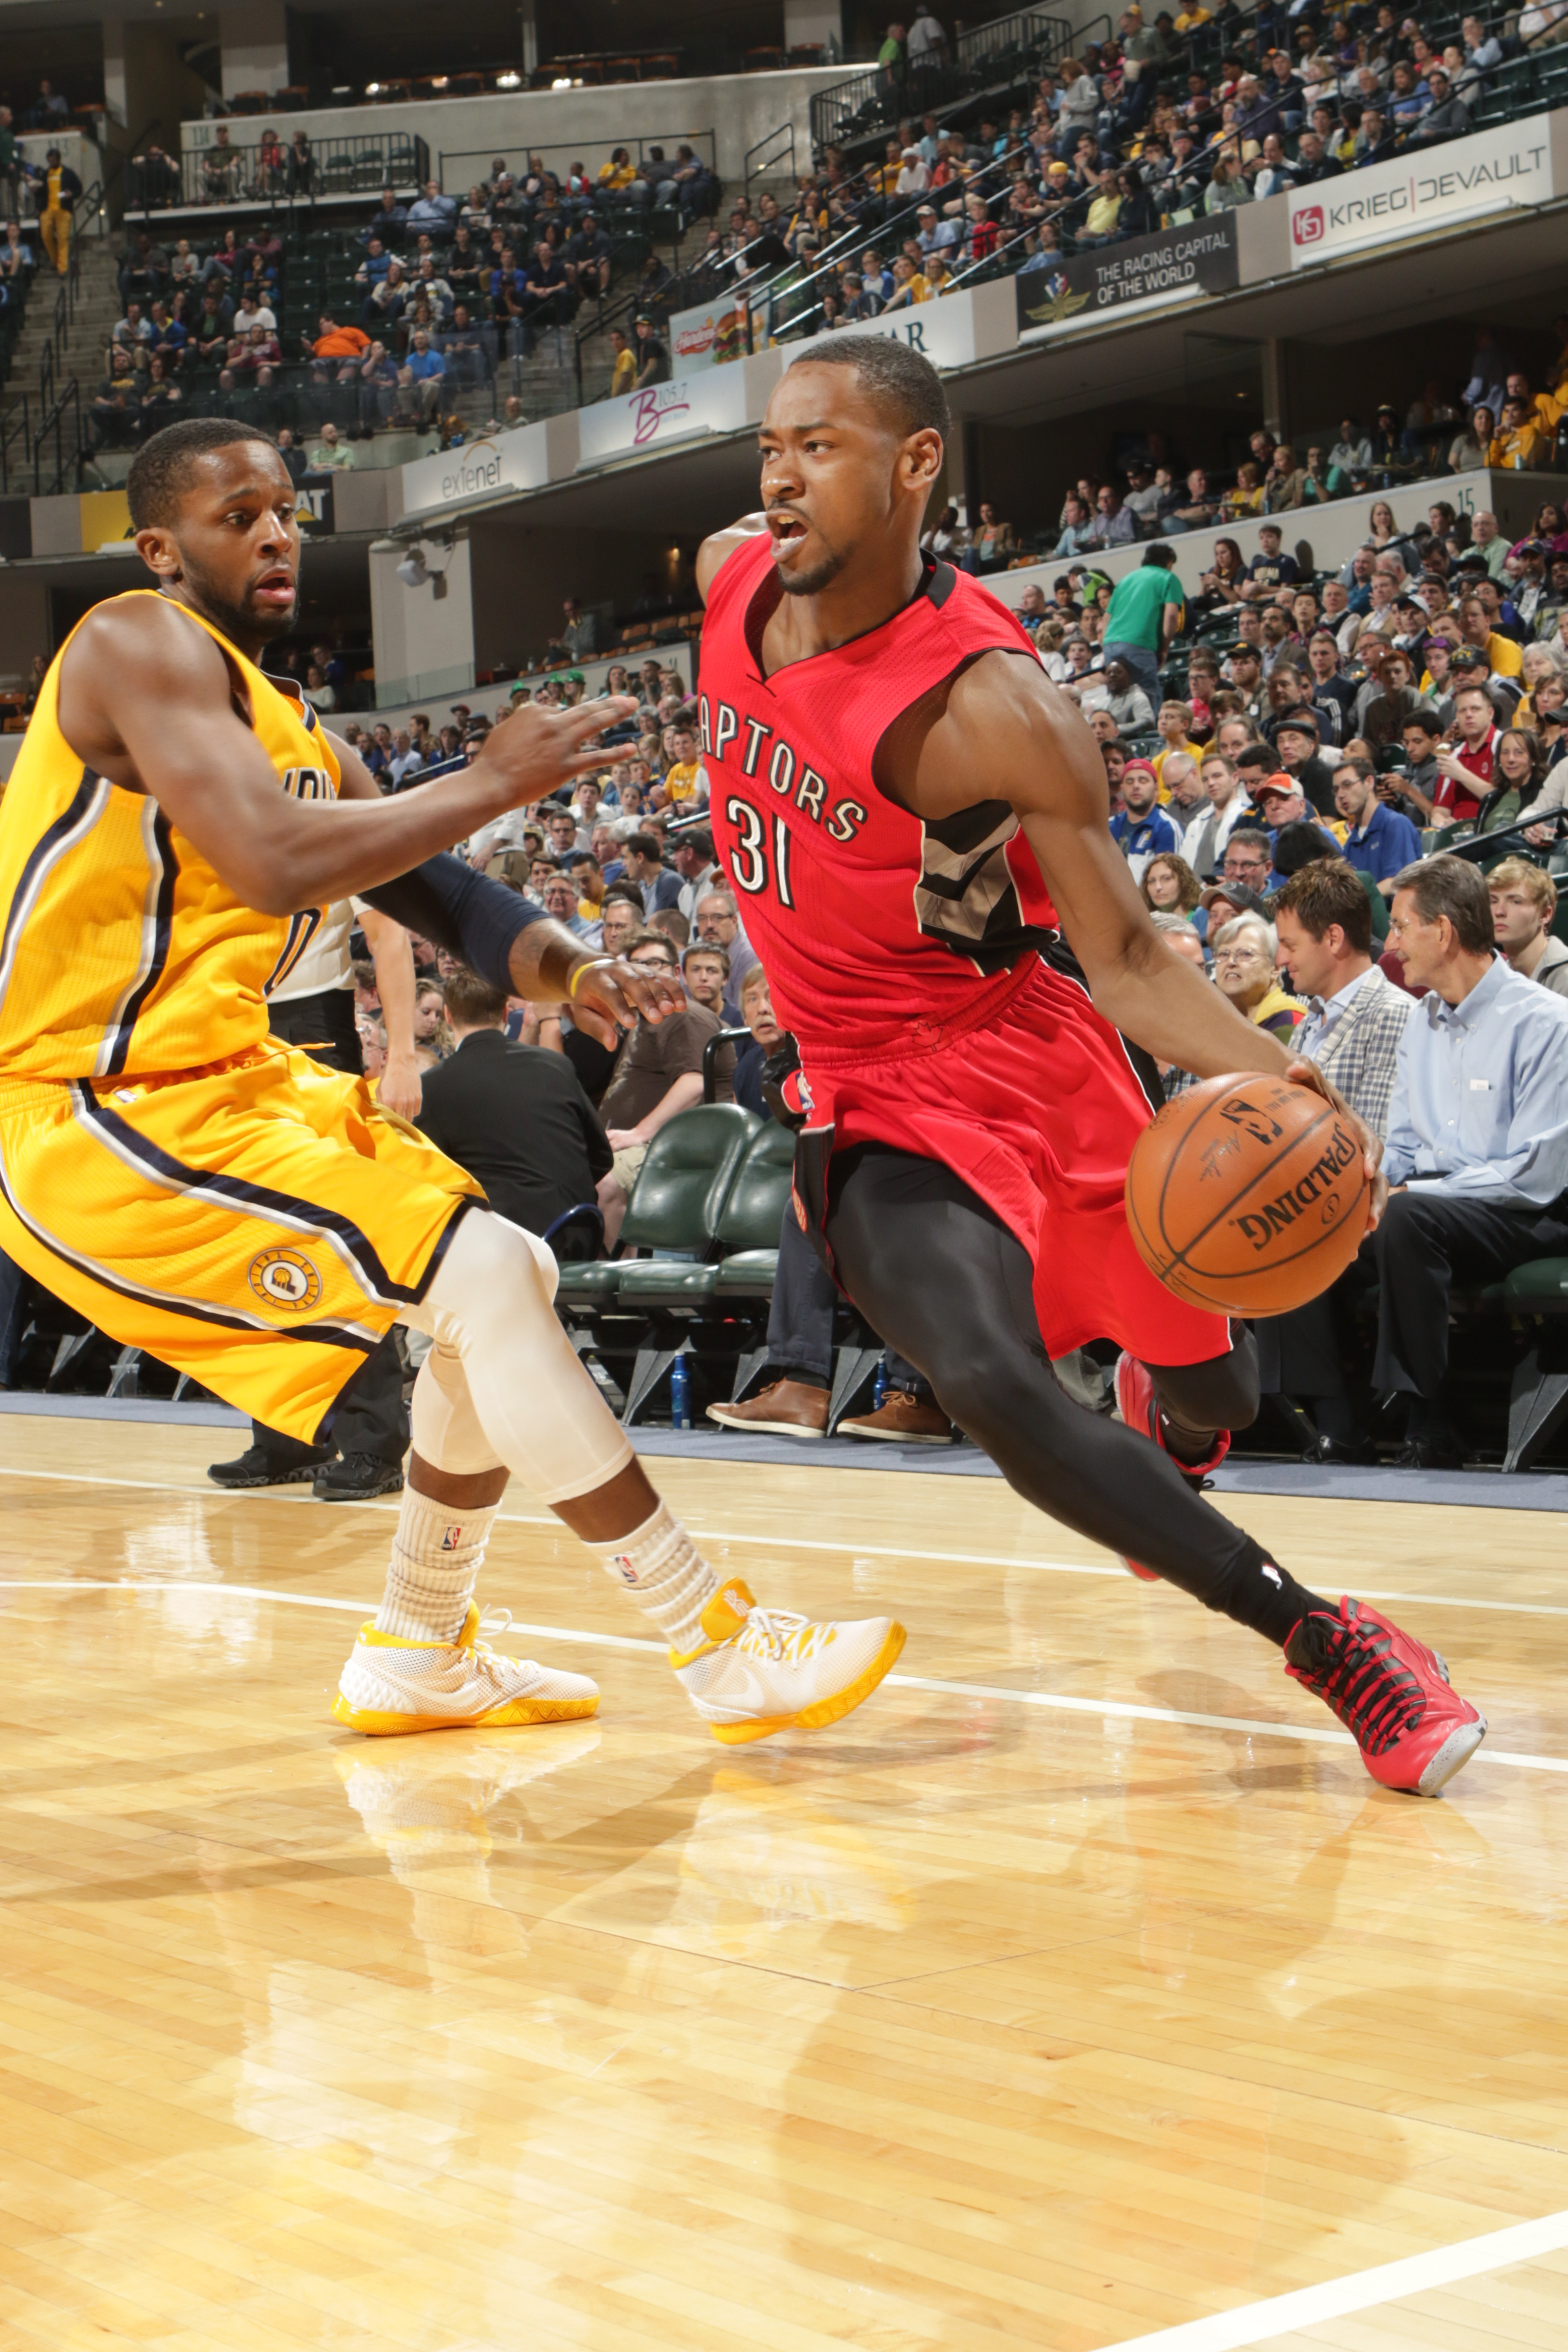 INDIANAPOLIS, IN - MARCH 16: Terrence Ross #31 of the Toronto Raptors drives to the basket against the Indiana Pacers during the game on March 16, 2015 at Bankers Life Fieldhouse in Indianapolis, Indiana. (Photo by Ron Hoskins/NBAE via Getty Images)